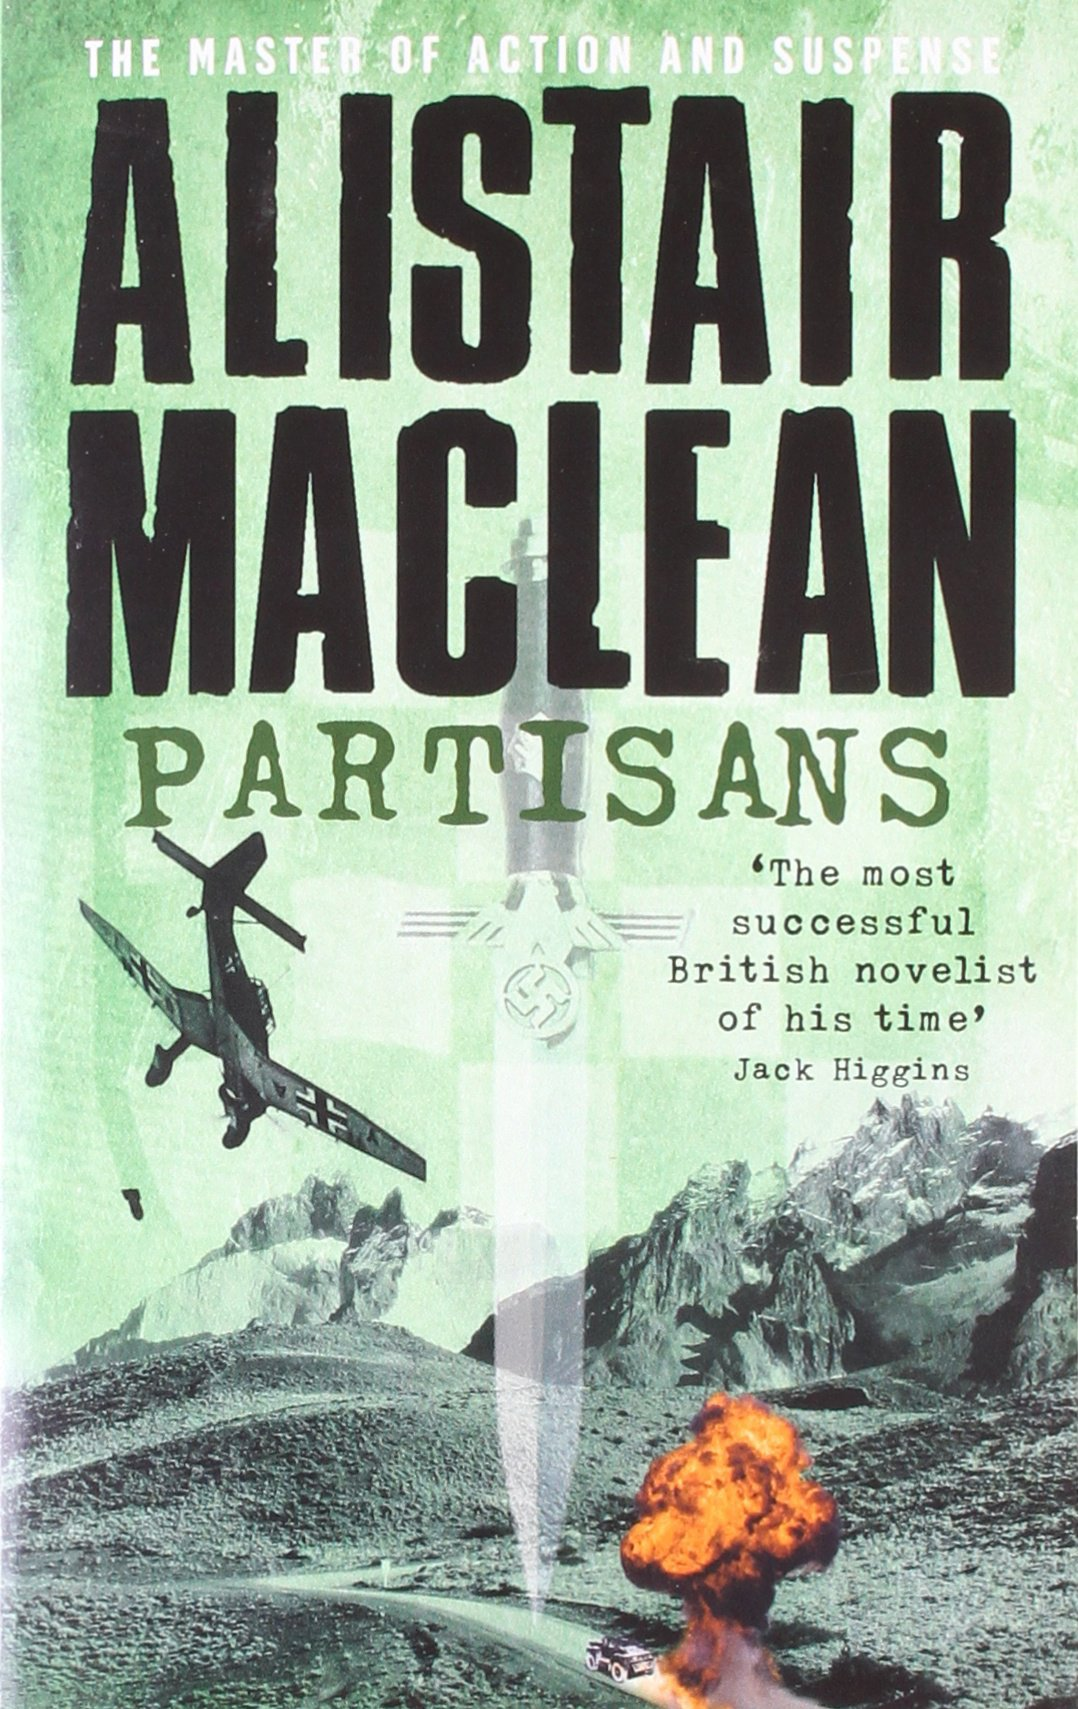 Book Cover of Partisans